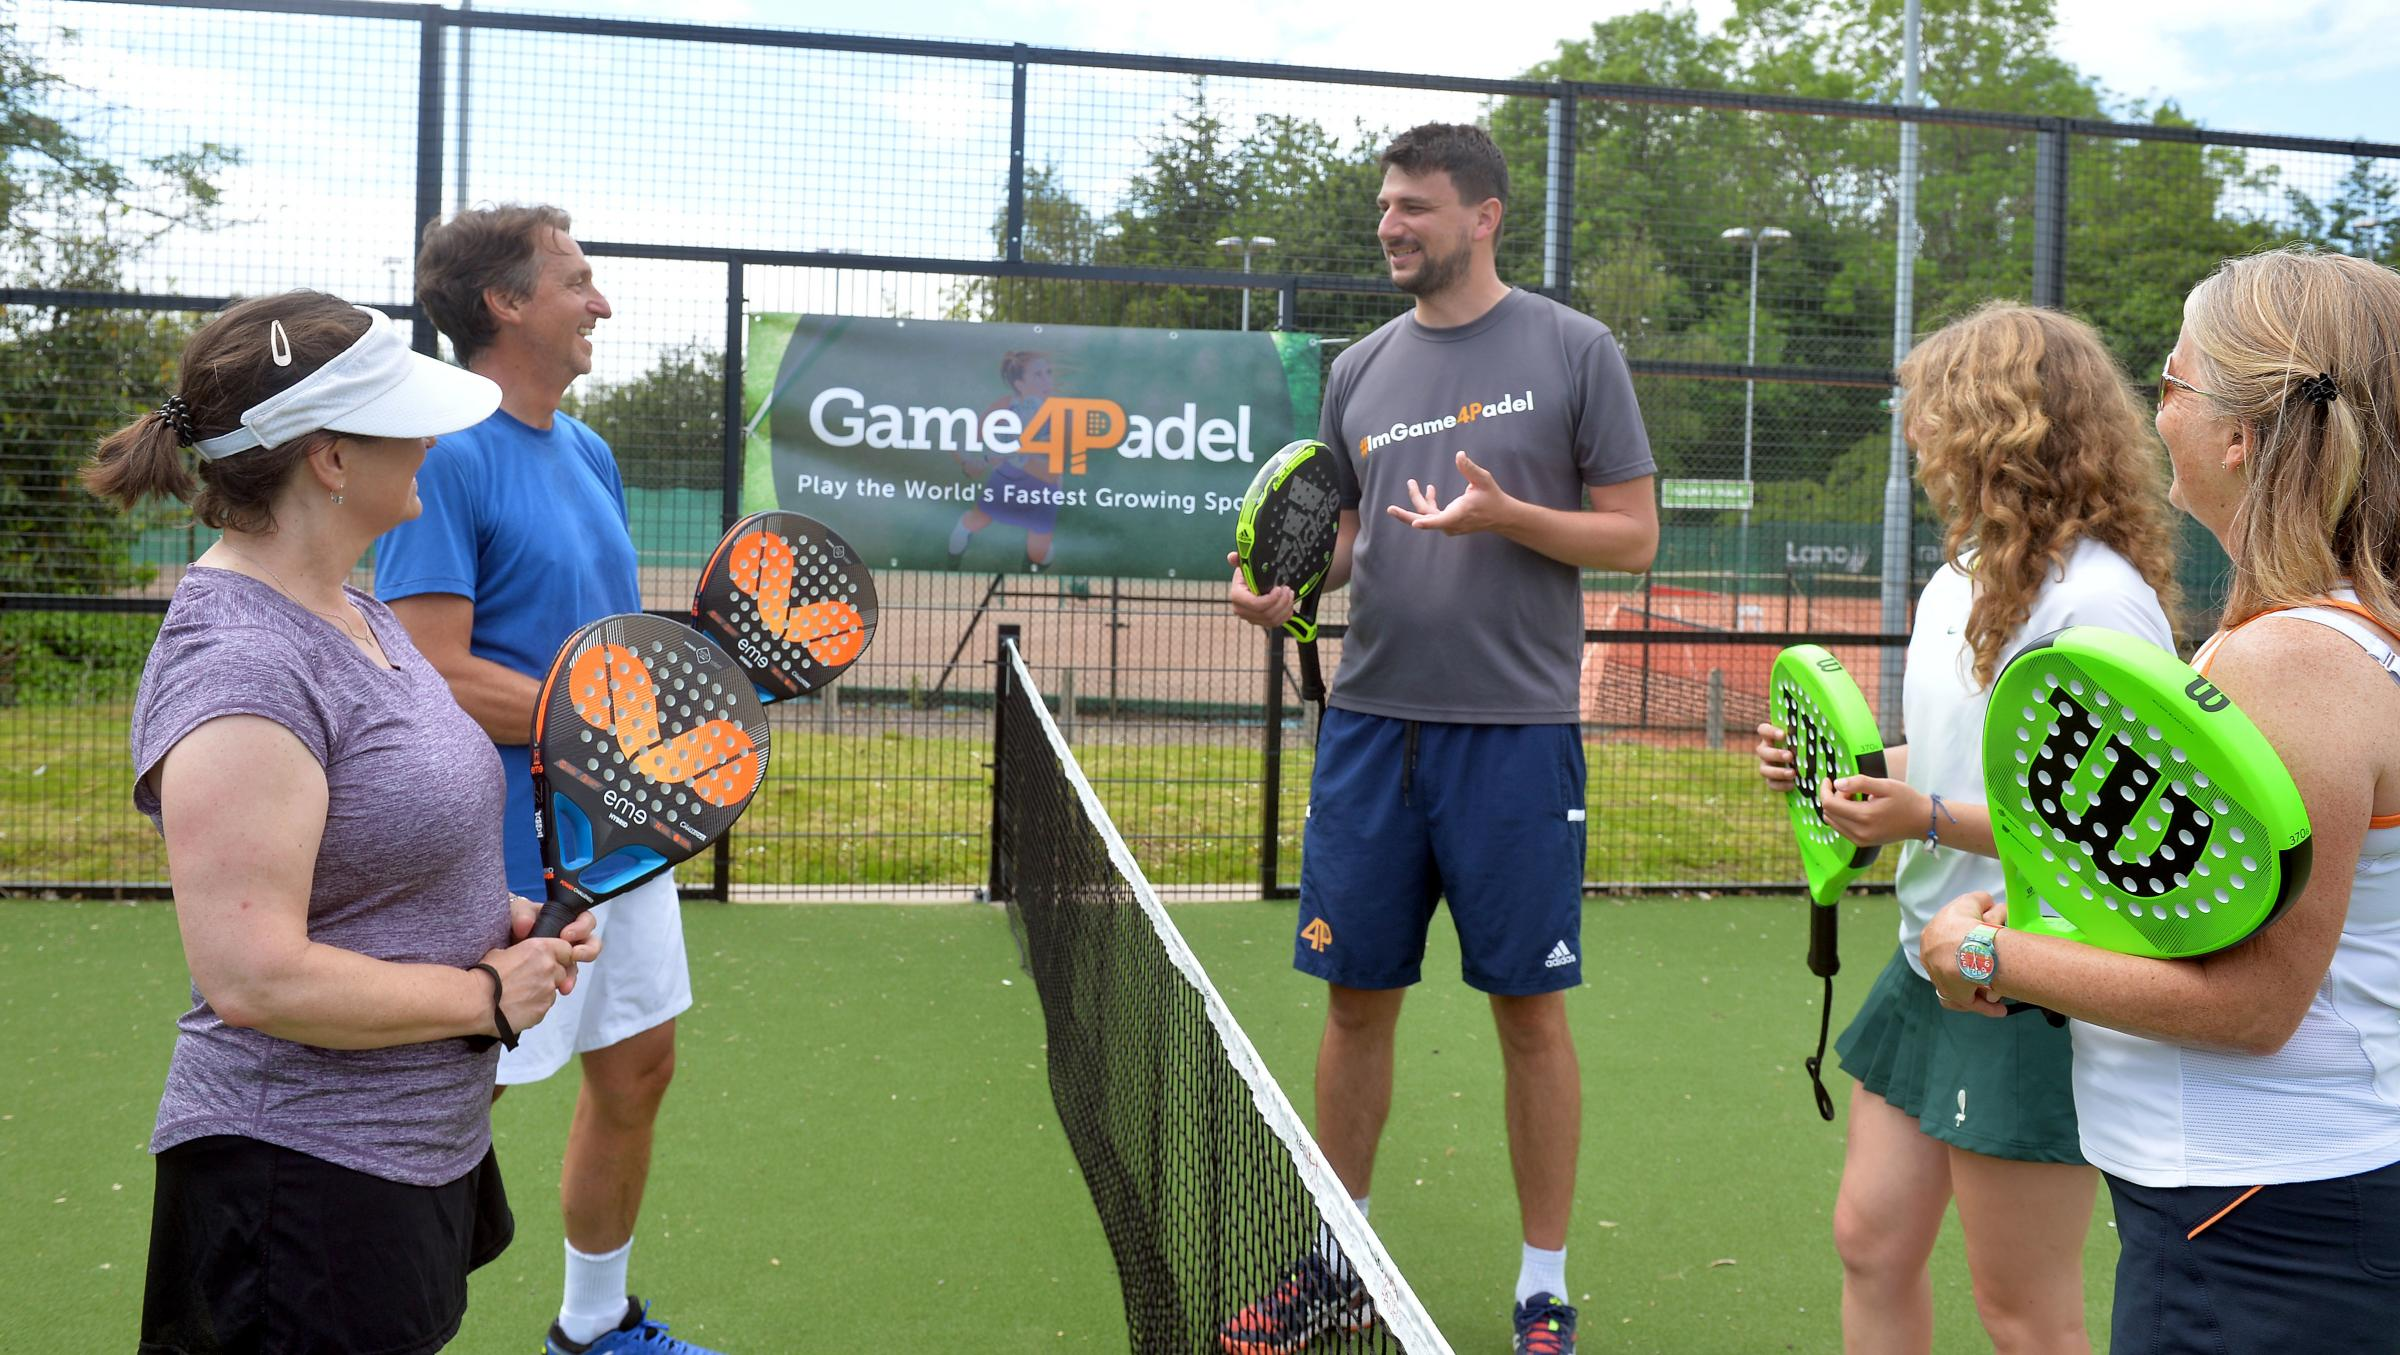 Padel lessons on the firt court in Wales from Vincent Hivert for members of the Windsor Lawn Tennis Club in Penarth www.christinsleyphotography.co.uk